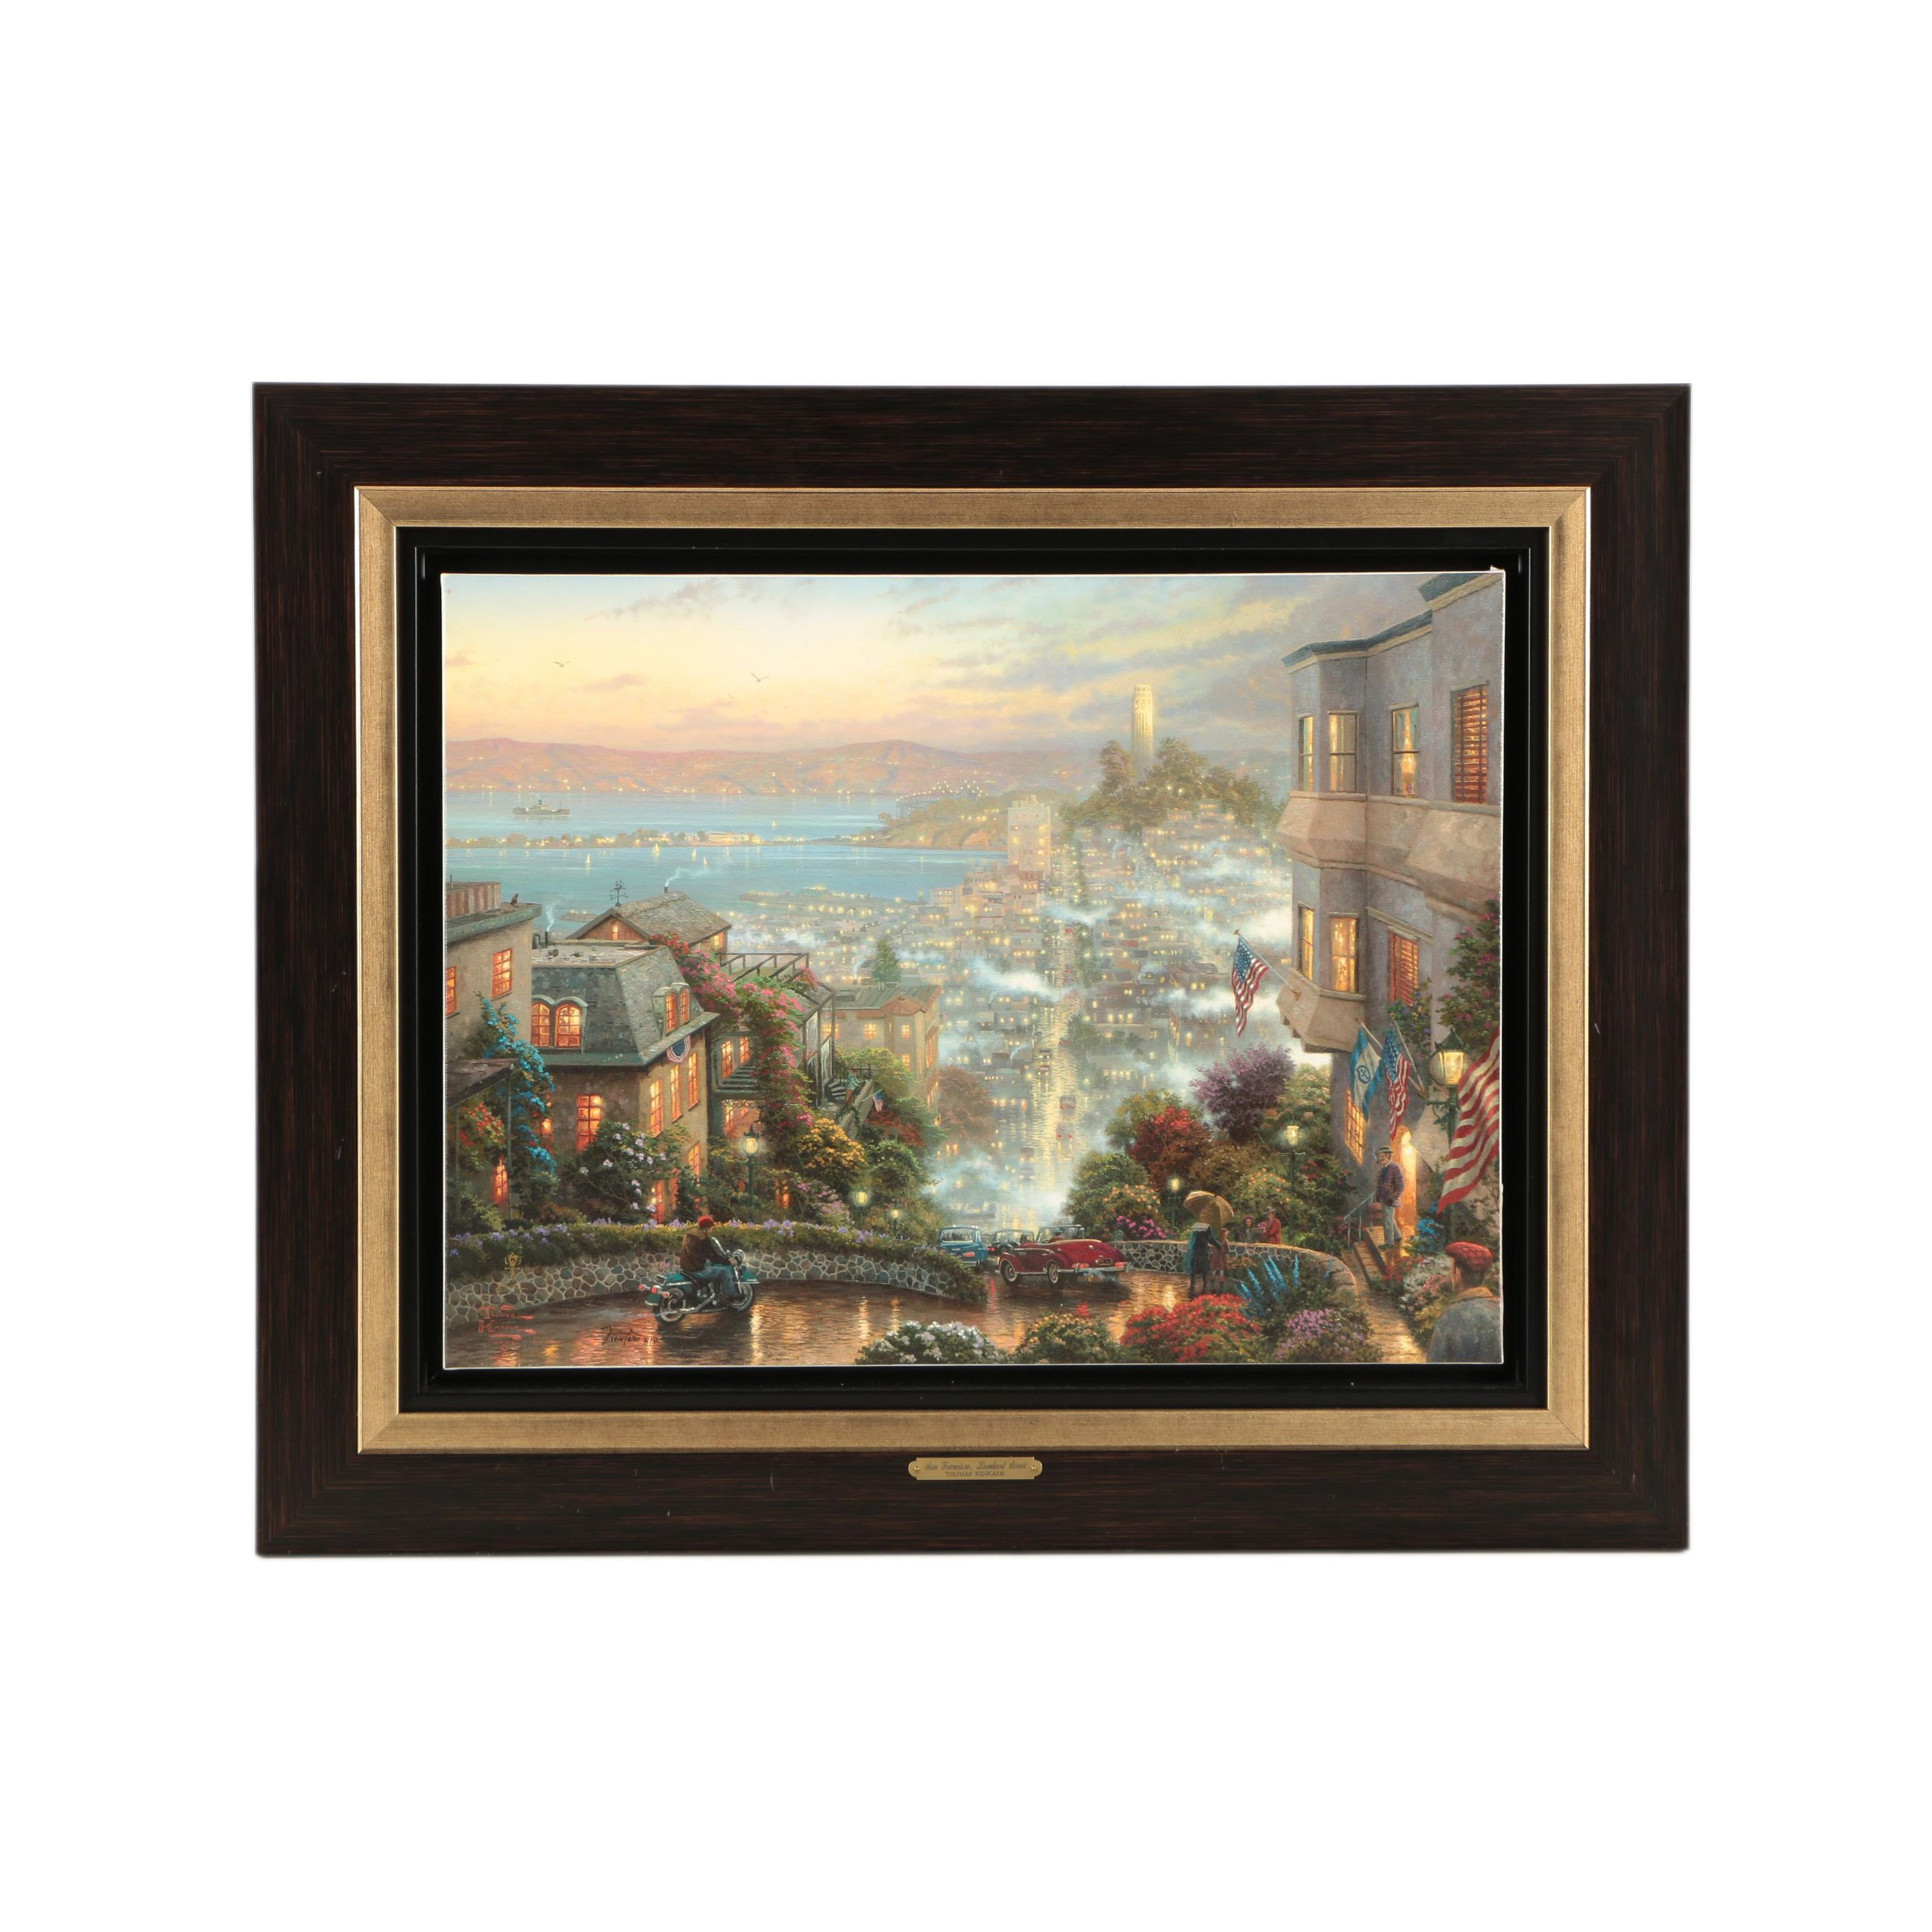 "Offset Lithograph on Canvas After Thomas Kinkade ""San Francisco, Lombard Street"""